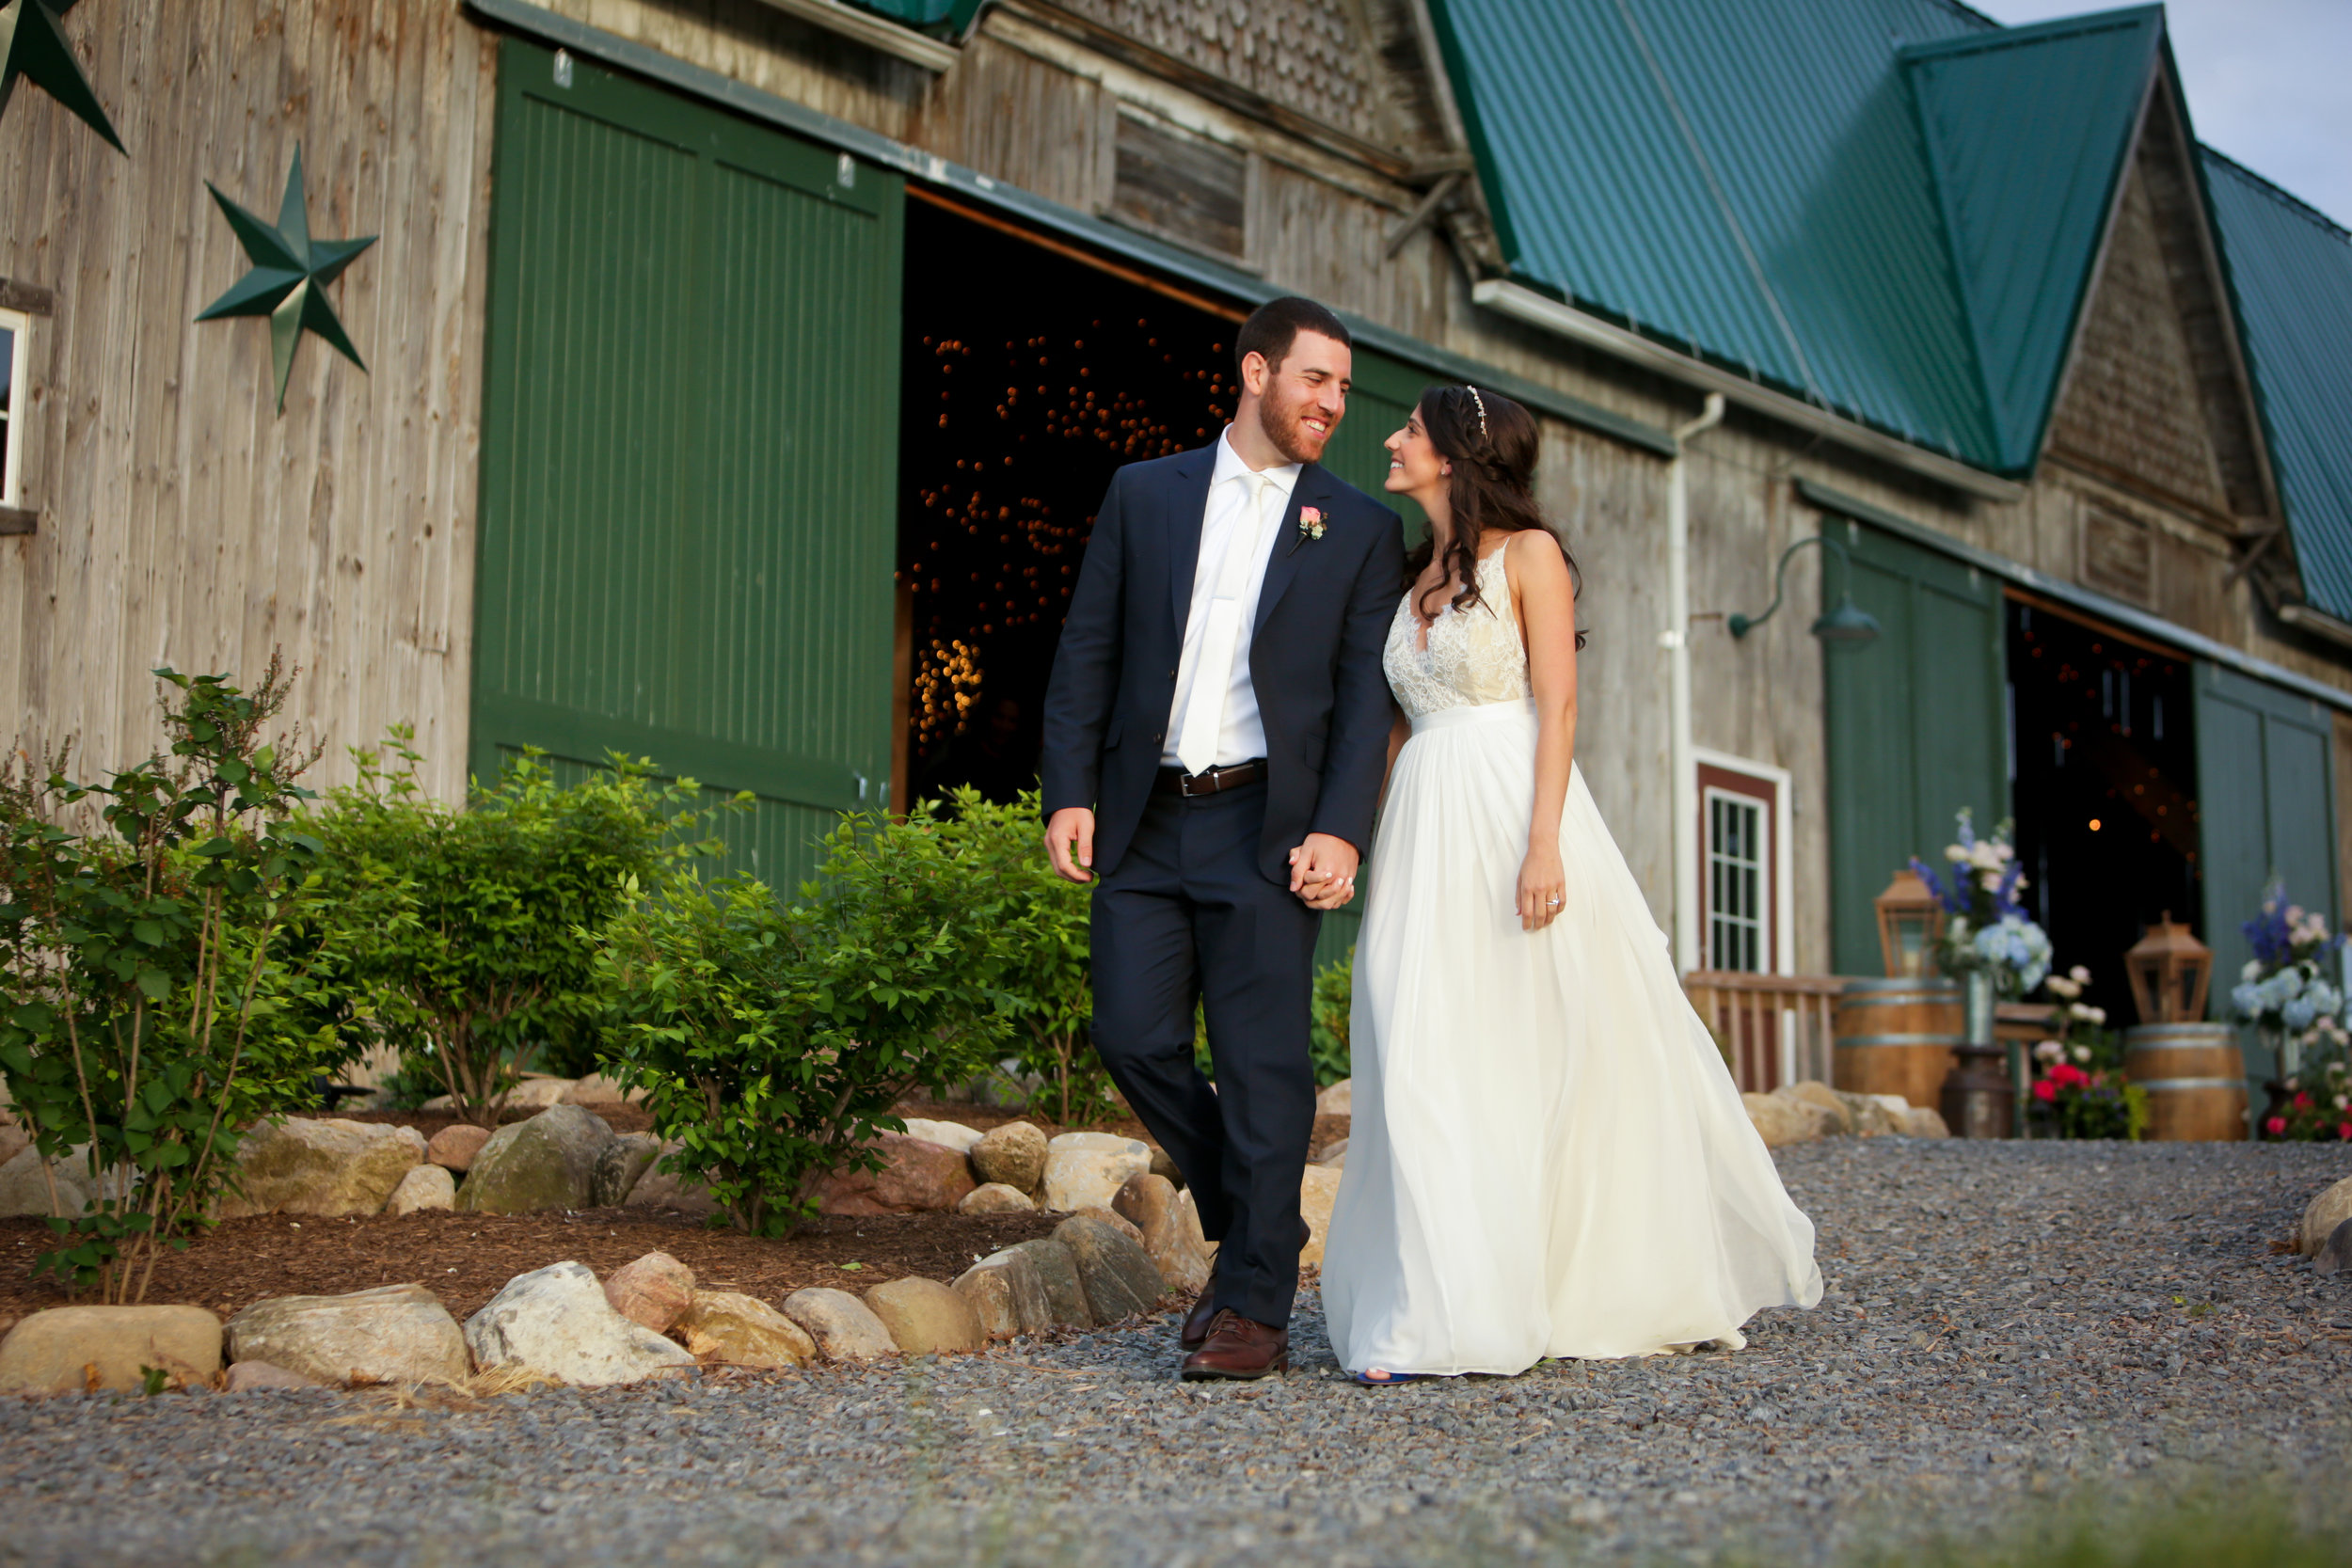 Perfect venue for bride and groom portraits.